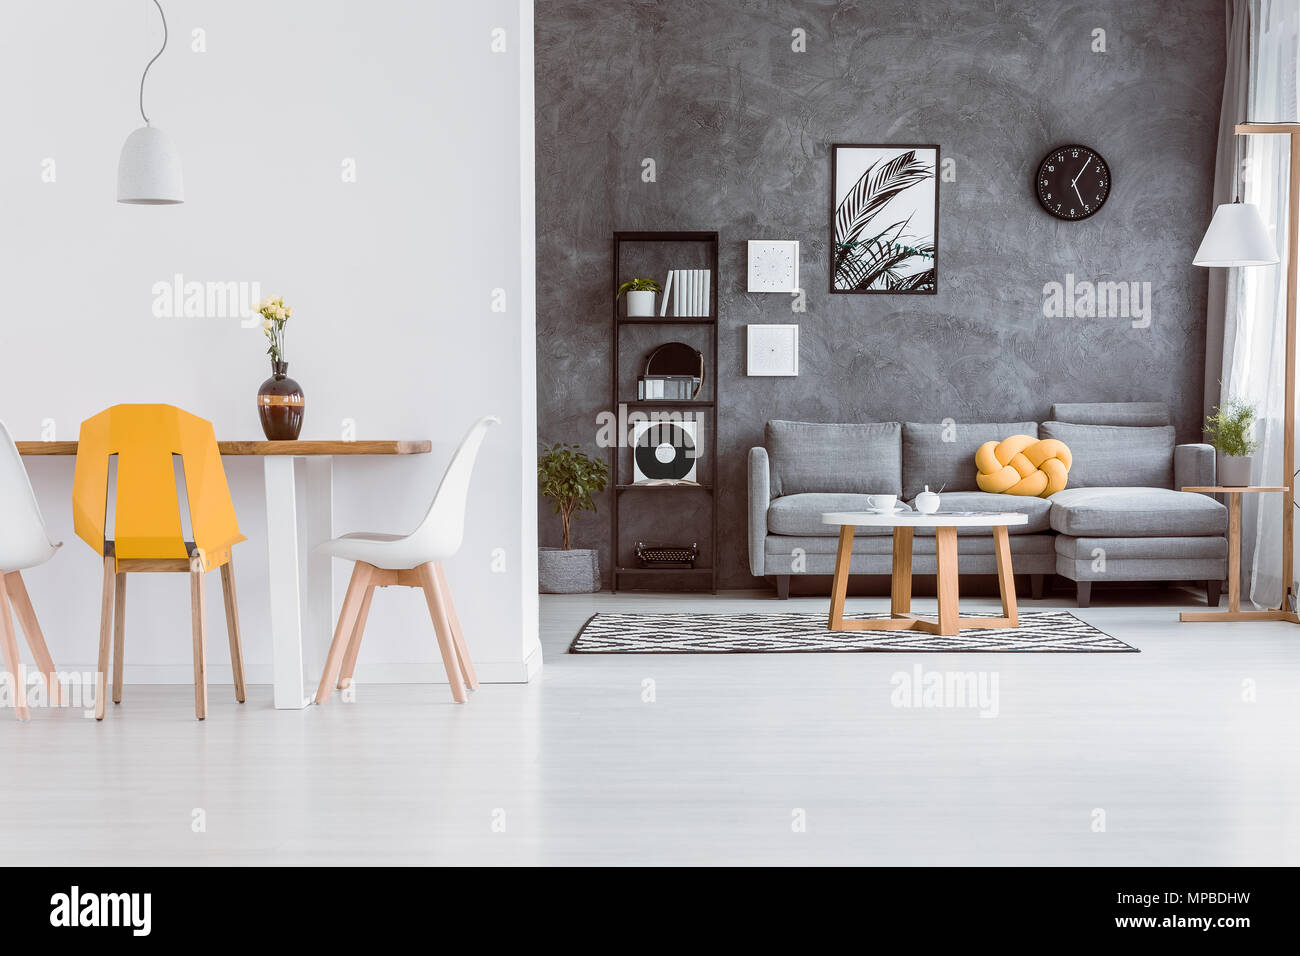 Grey And Yellow Chair Decorative Vase On Dining Table With Yellow Chair In Living Room